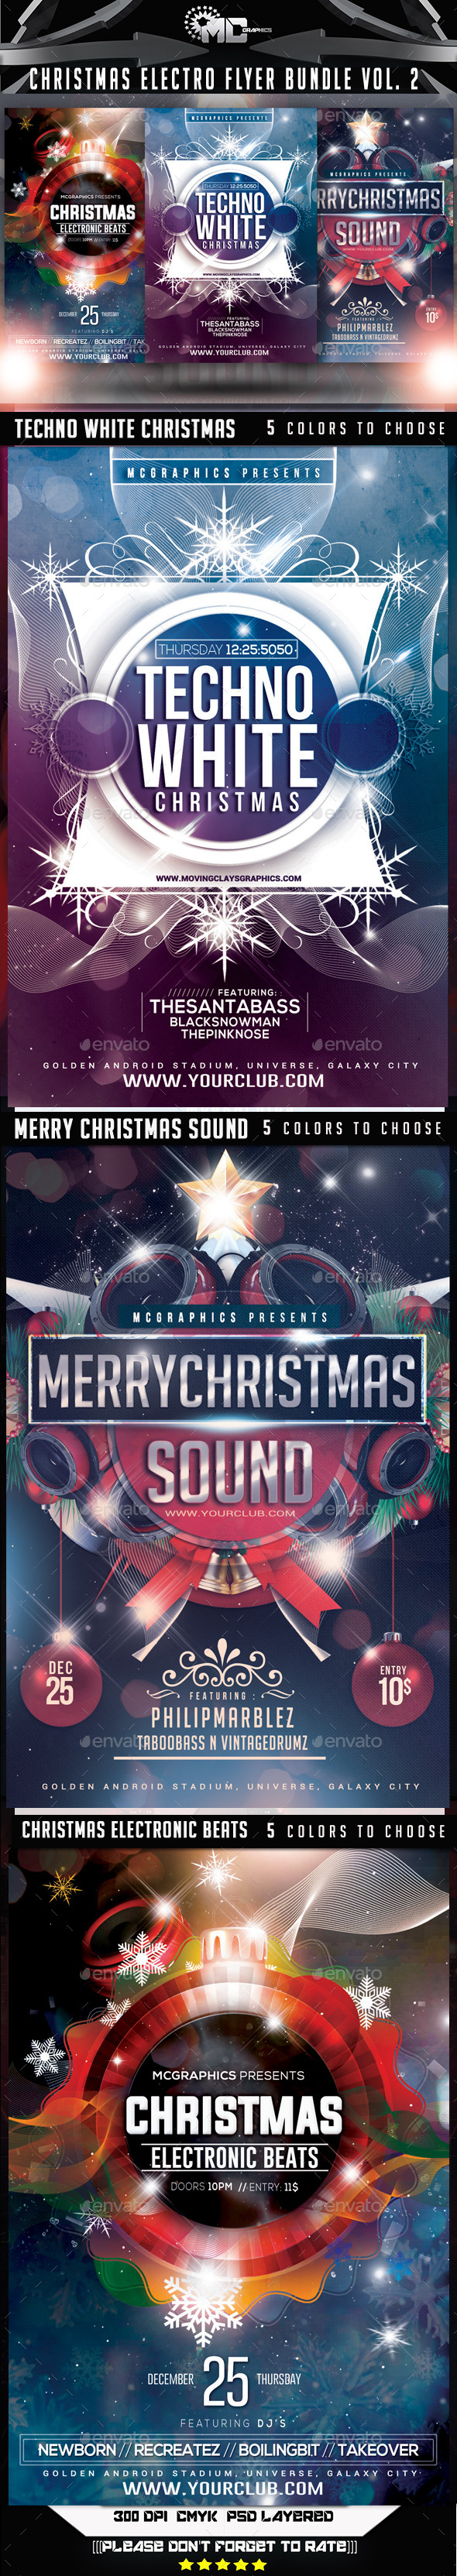 GraphicRiver Christmas Electro Flyer Bundle Vol 2 9617207